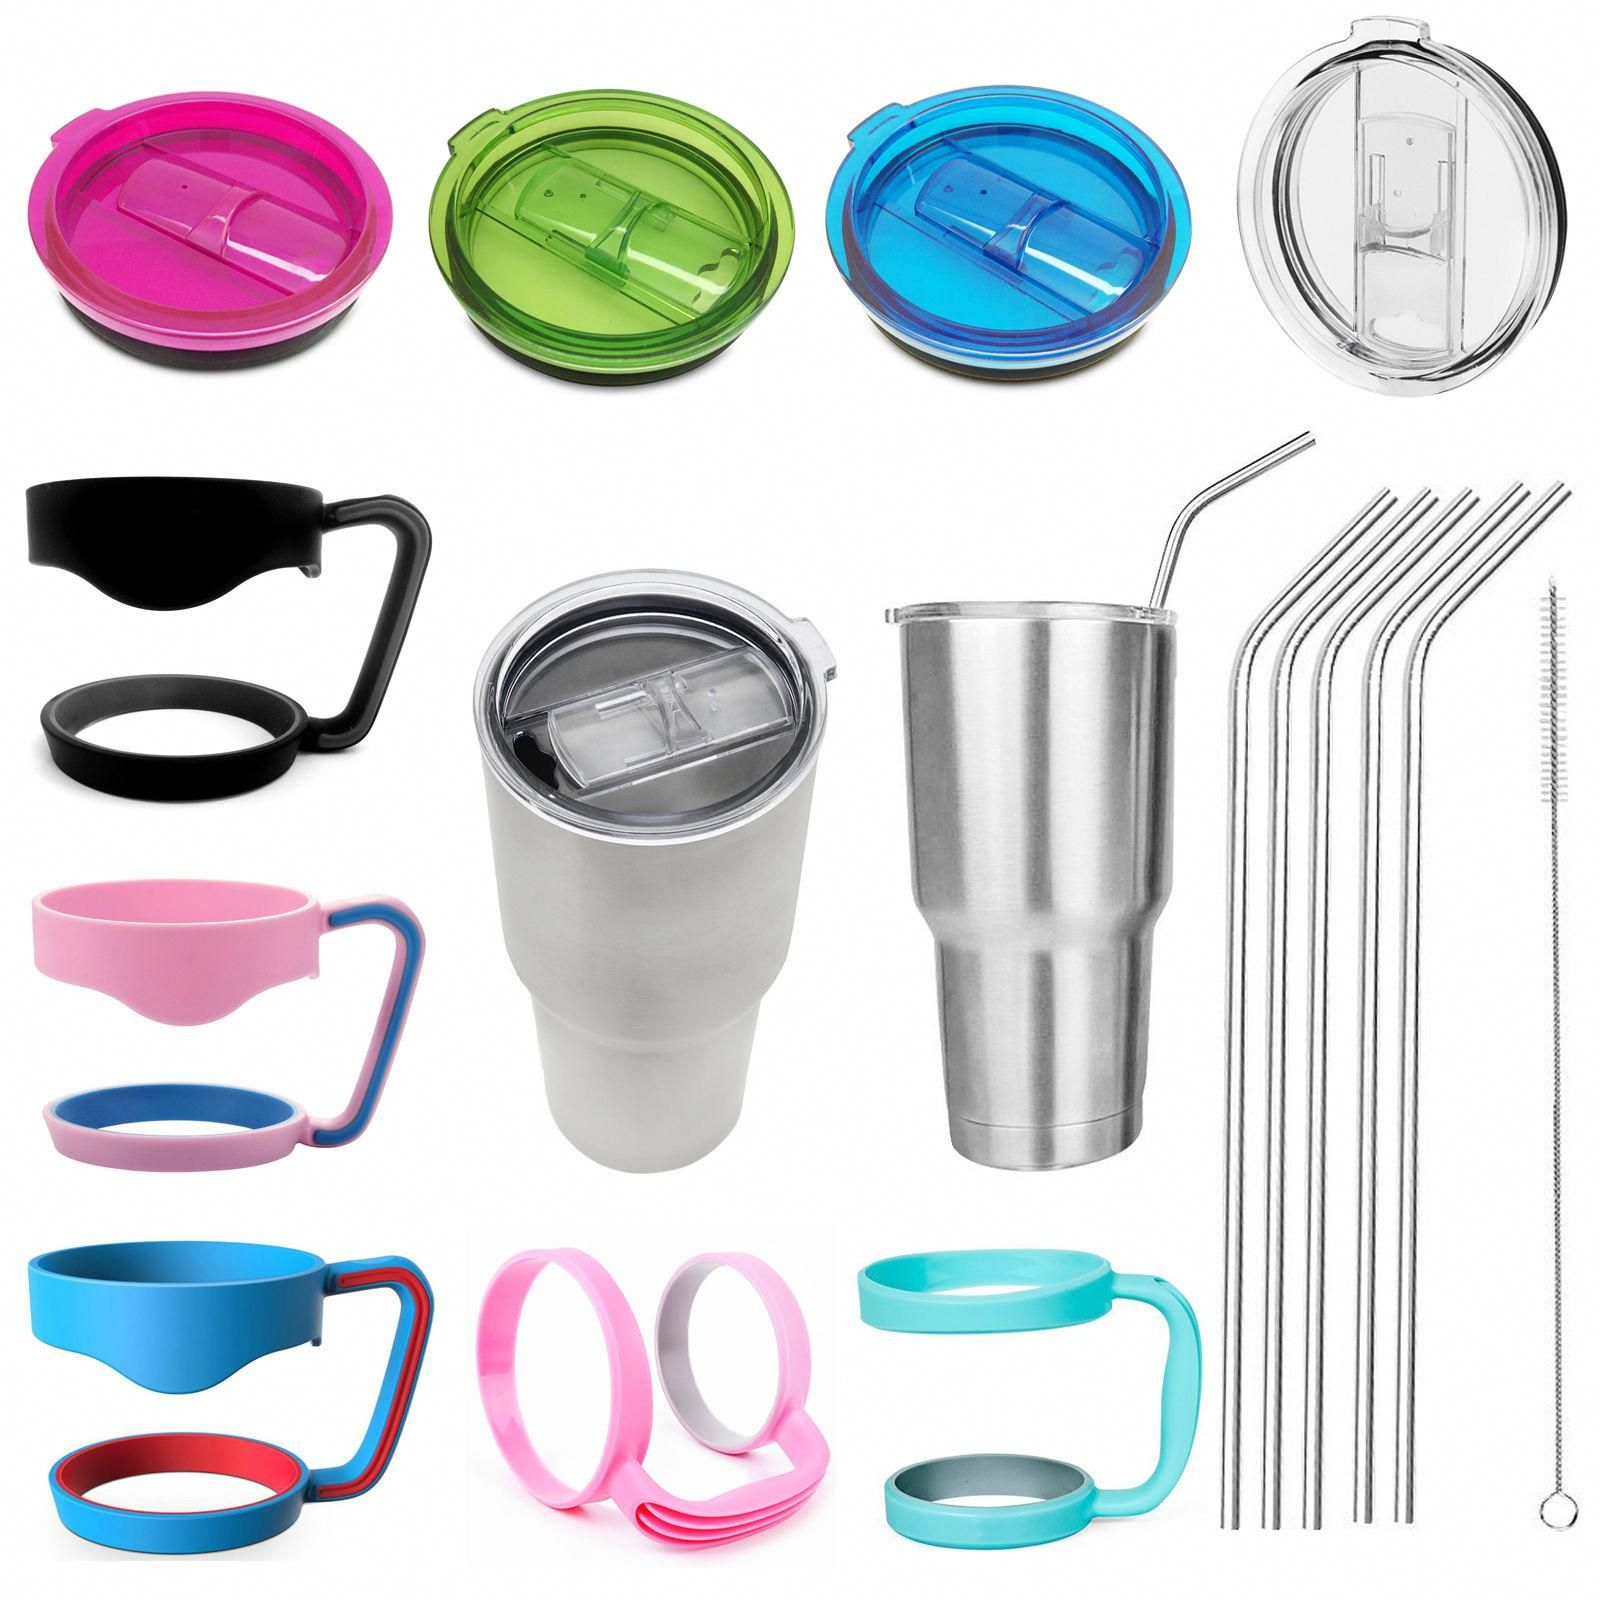 1 55 Aud For 30 Oz Yeti Rambler Rtic Replacement Cup Lid Tumbler Handle Lid Holder Straws Ebay Home Garden Rtic Tumblers Yeti Rambler Tumblers Yeti